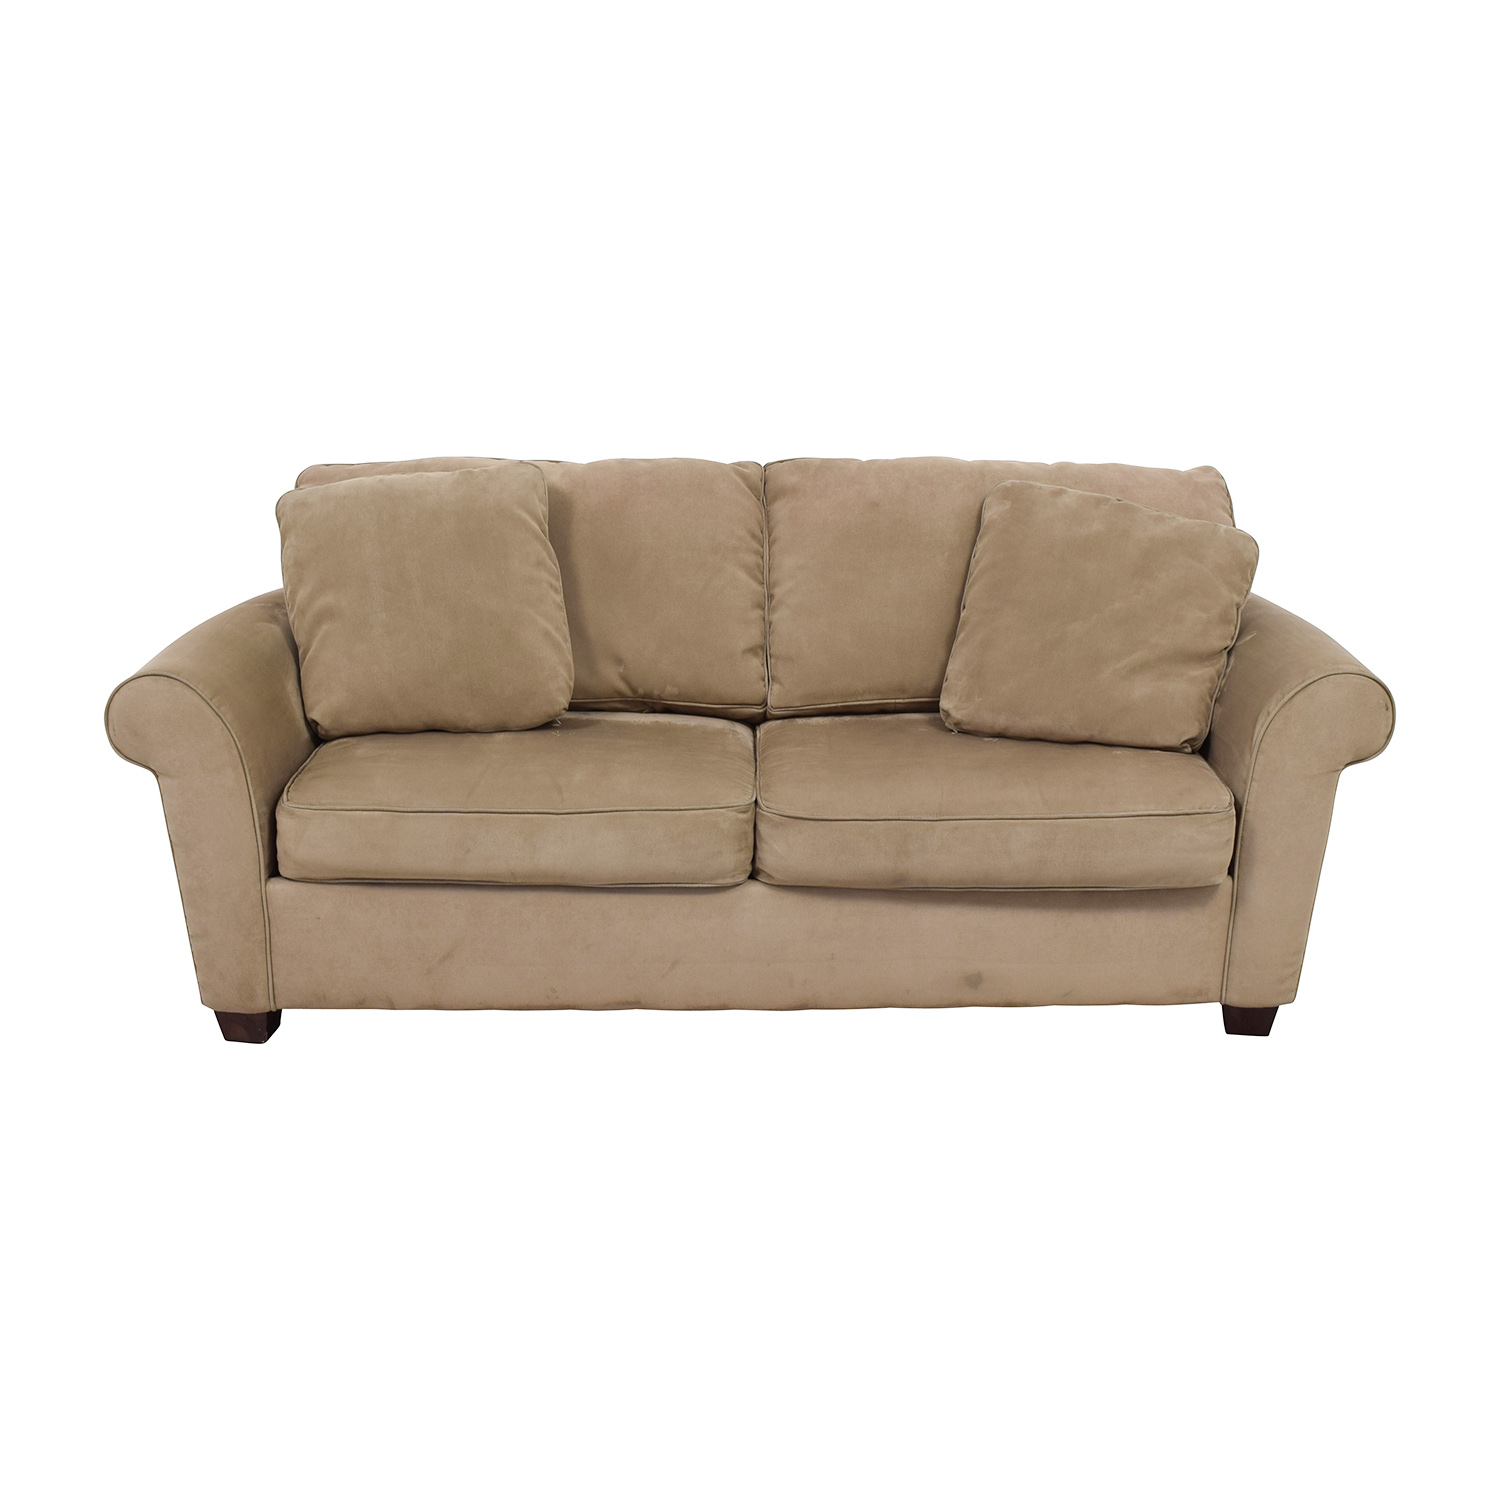 oversized sofa and loveseat. Bauhaus Microfiber Tan Oversized Couch For Sale Sofa And Loveseat O